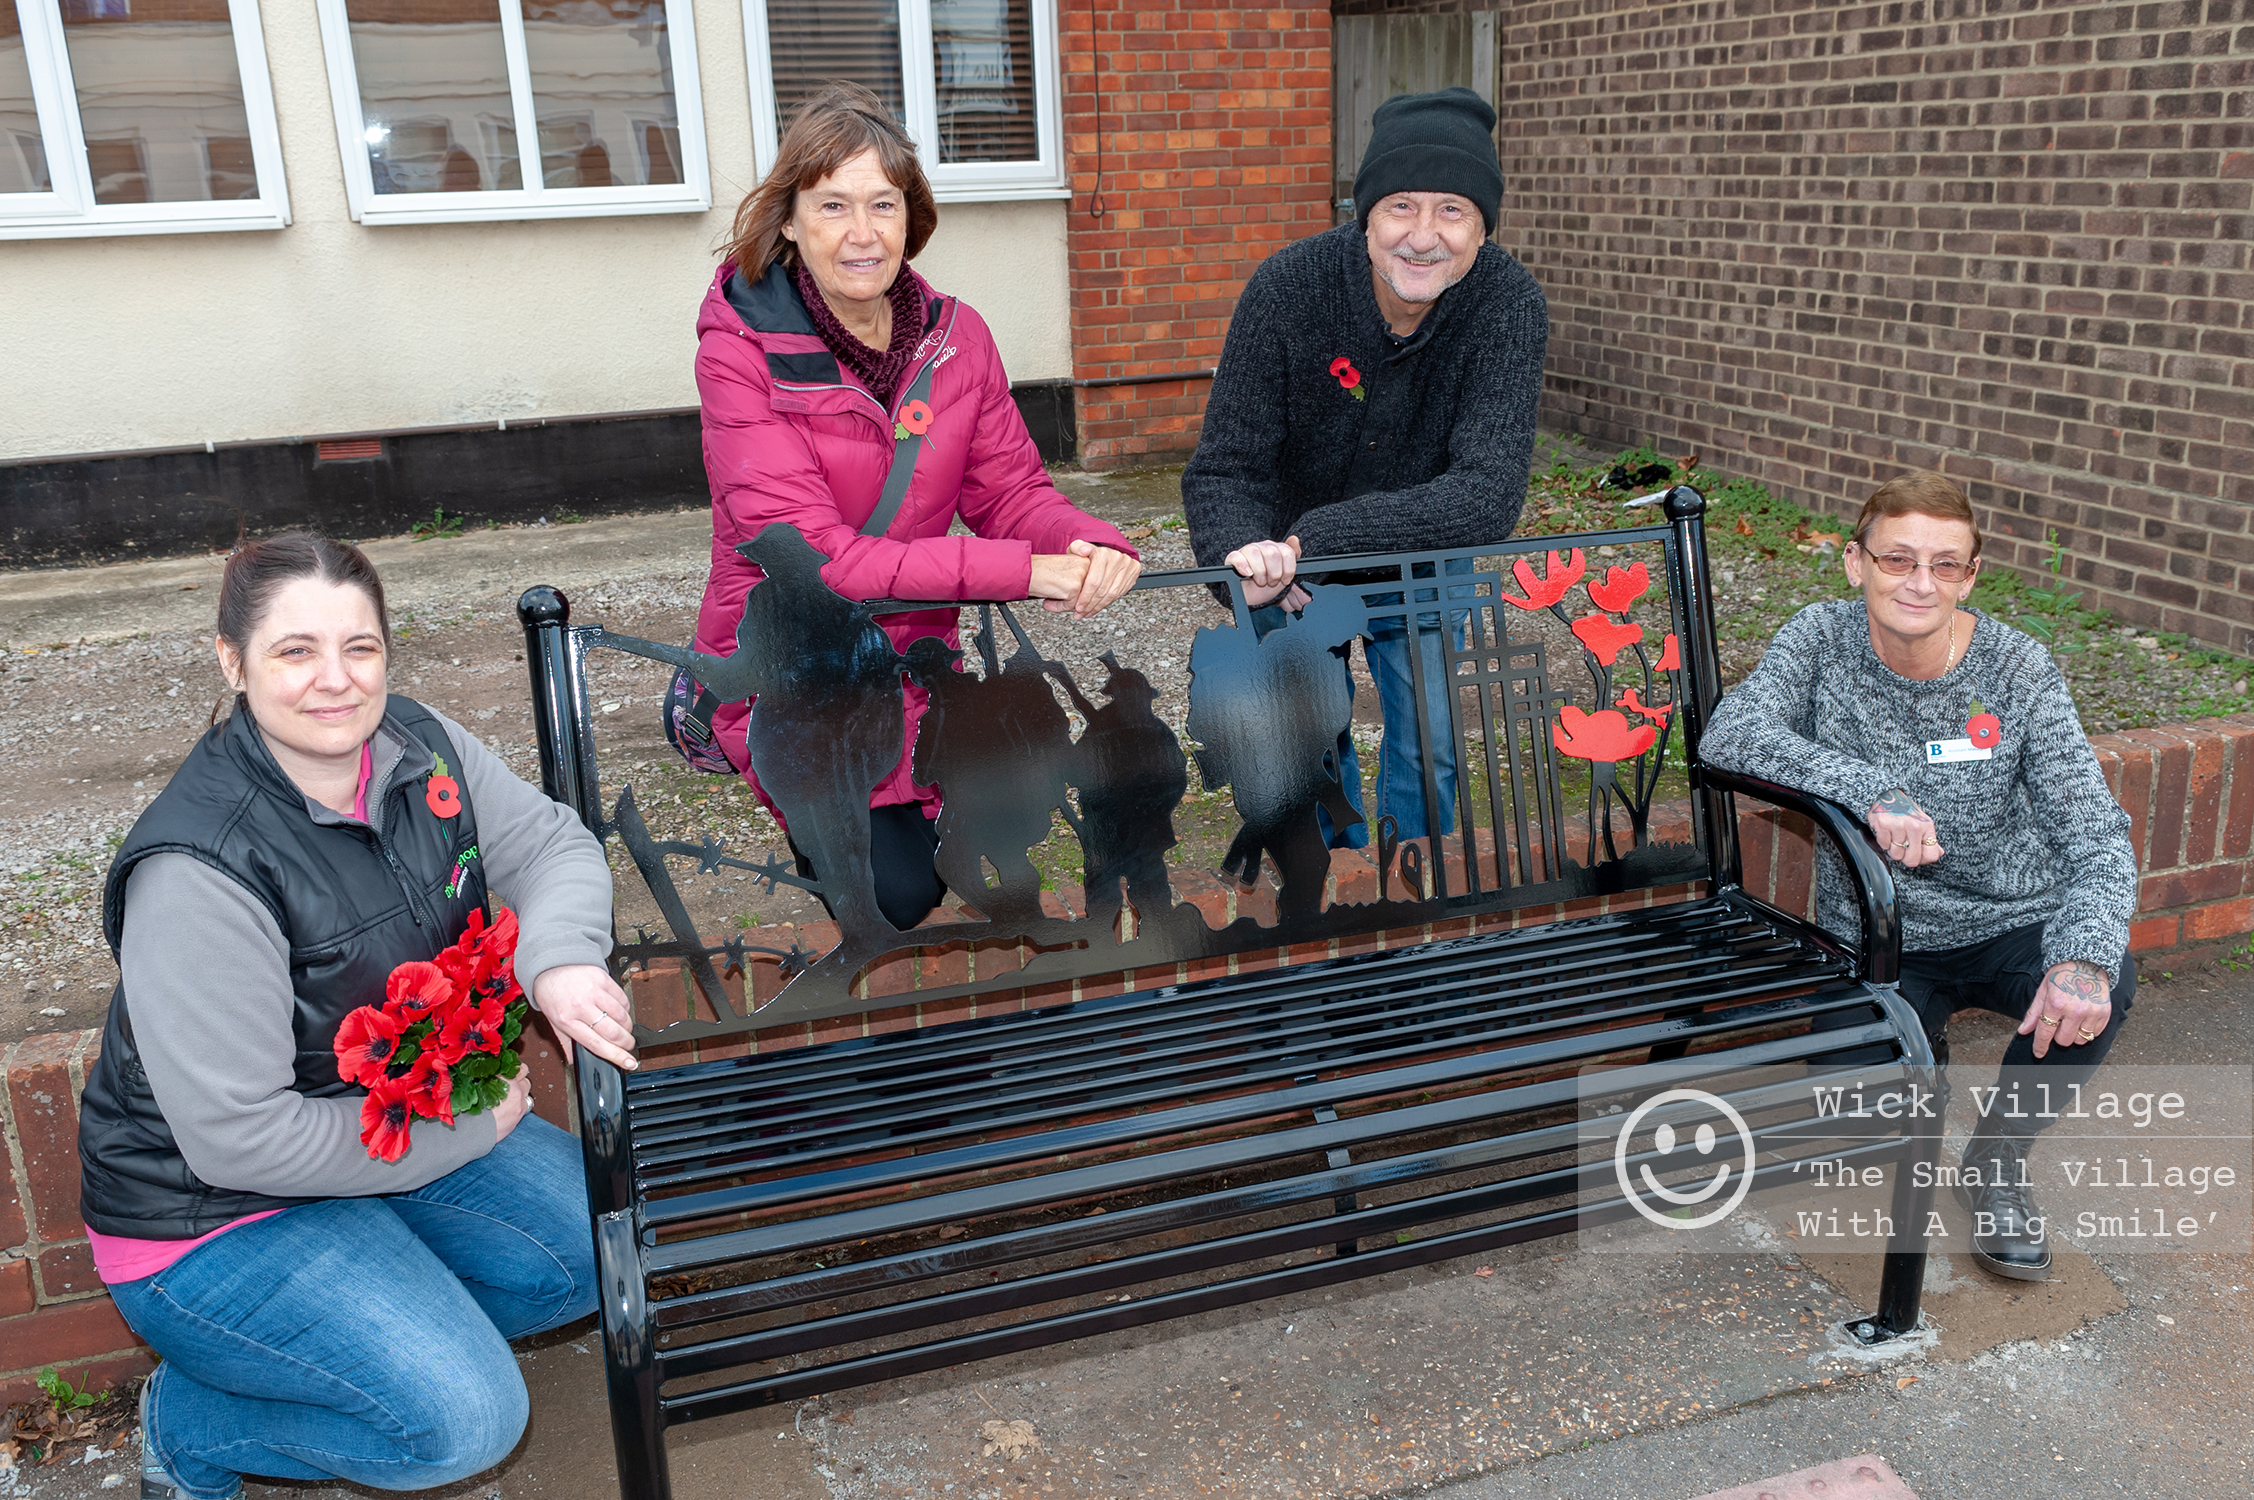 The Wick Village Traders Association have funded a new bench in Wick Village to mark the centenary of the end of the First World War. In Pic: Standing next to the new bench on Wick Street are left to right - Michelle Bly, Head Designer at The Flower Shop Littlehampton, Julie Roby, Wick Information Centre and Wick Hall Manager, Roger Arthurs, Owner of Going Spare, and Jan O'Sullivan, Assistant Manager at The St Barnabas House Charity Shop. Photo © Scott Ramsey  Littlehampton Photographer .